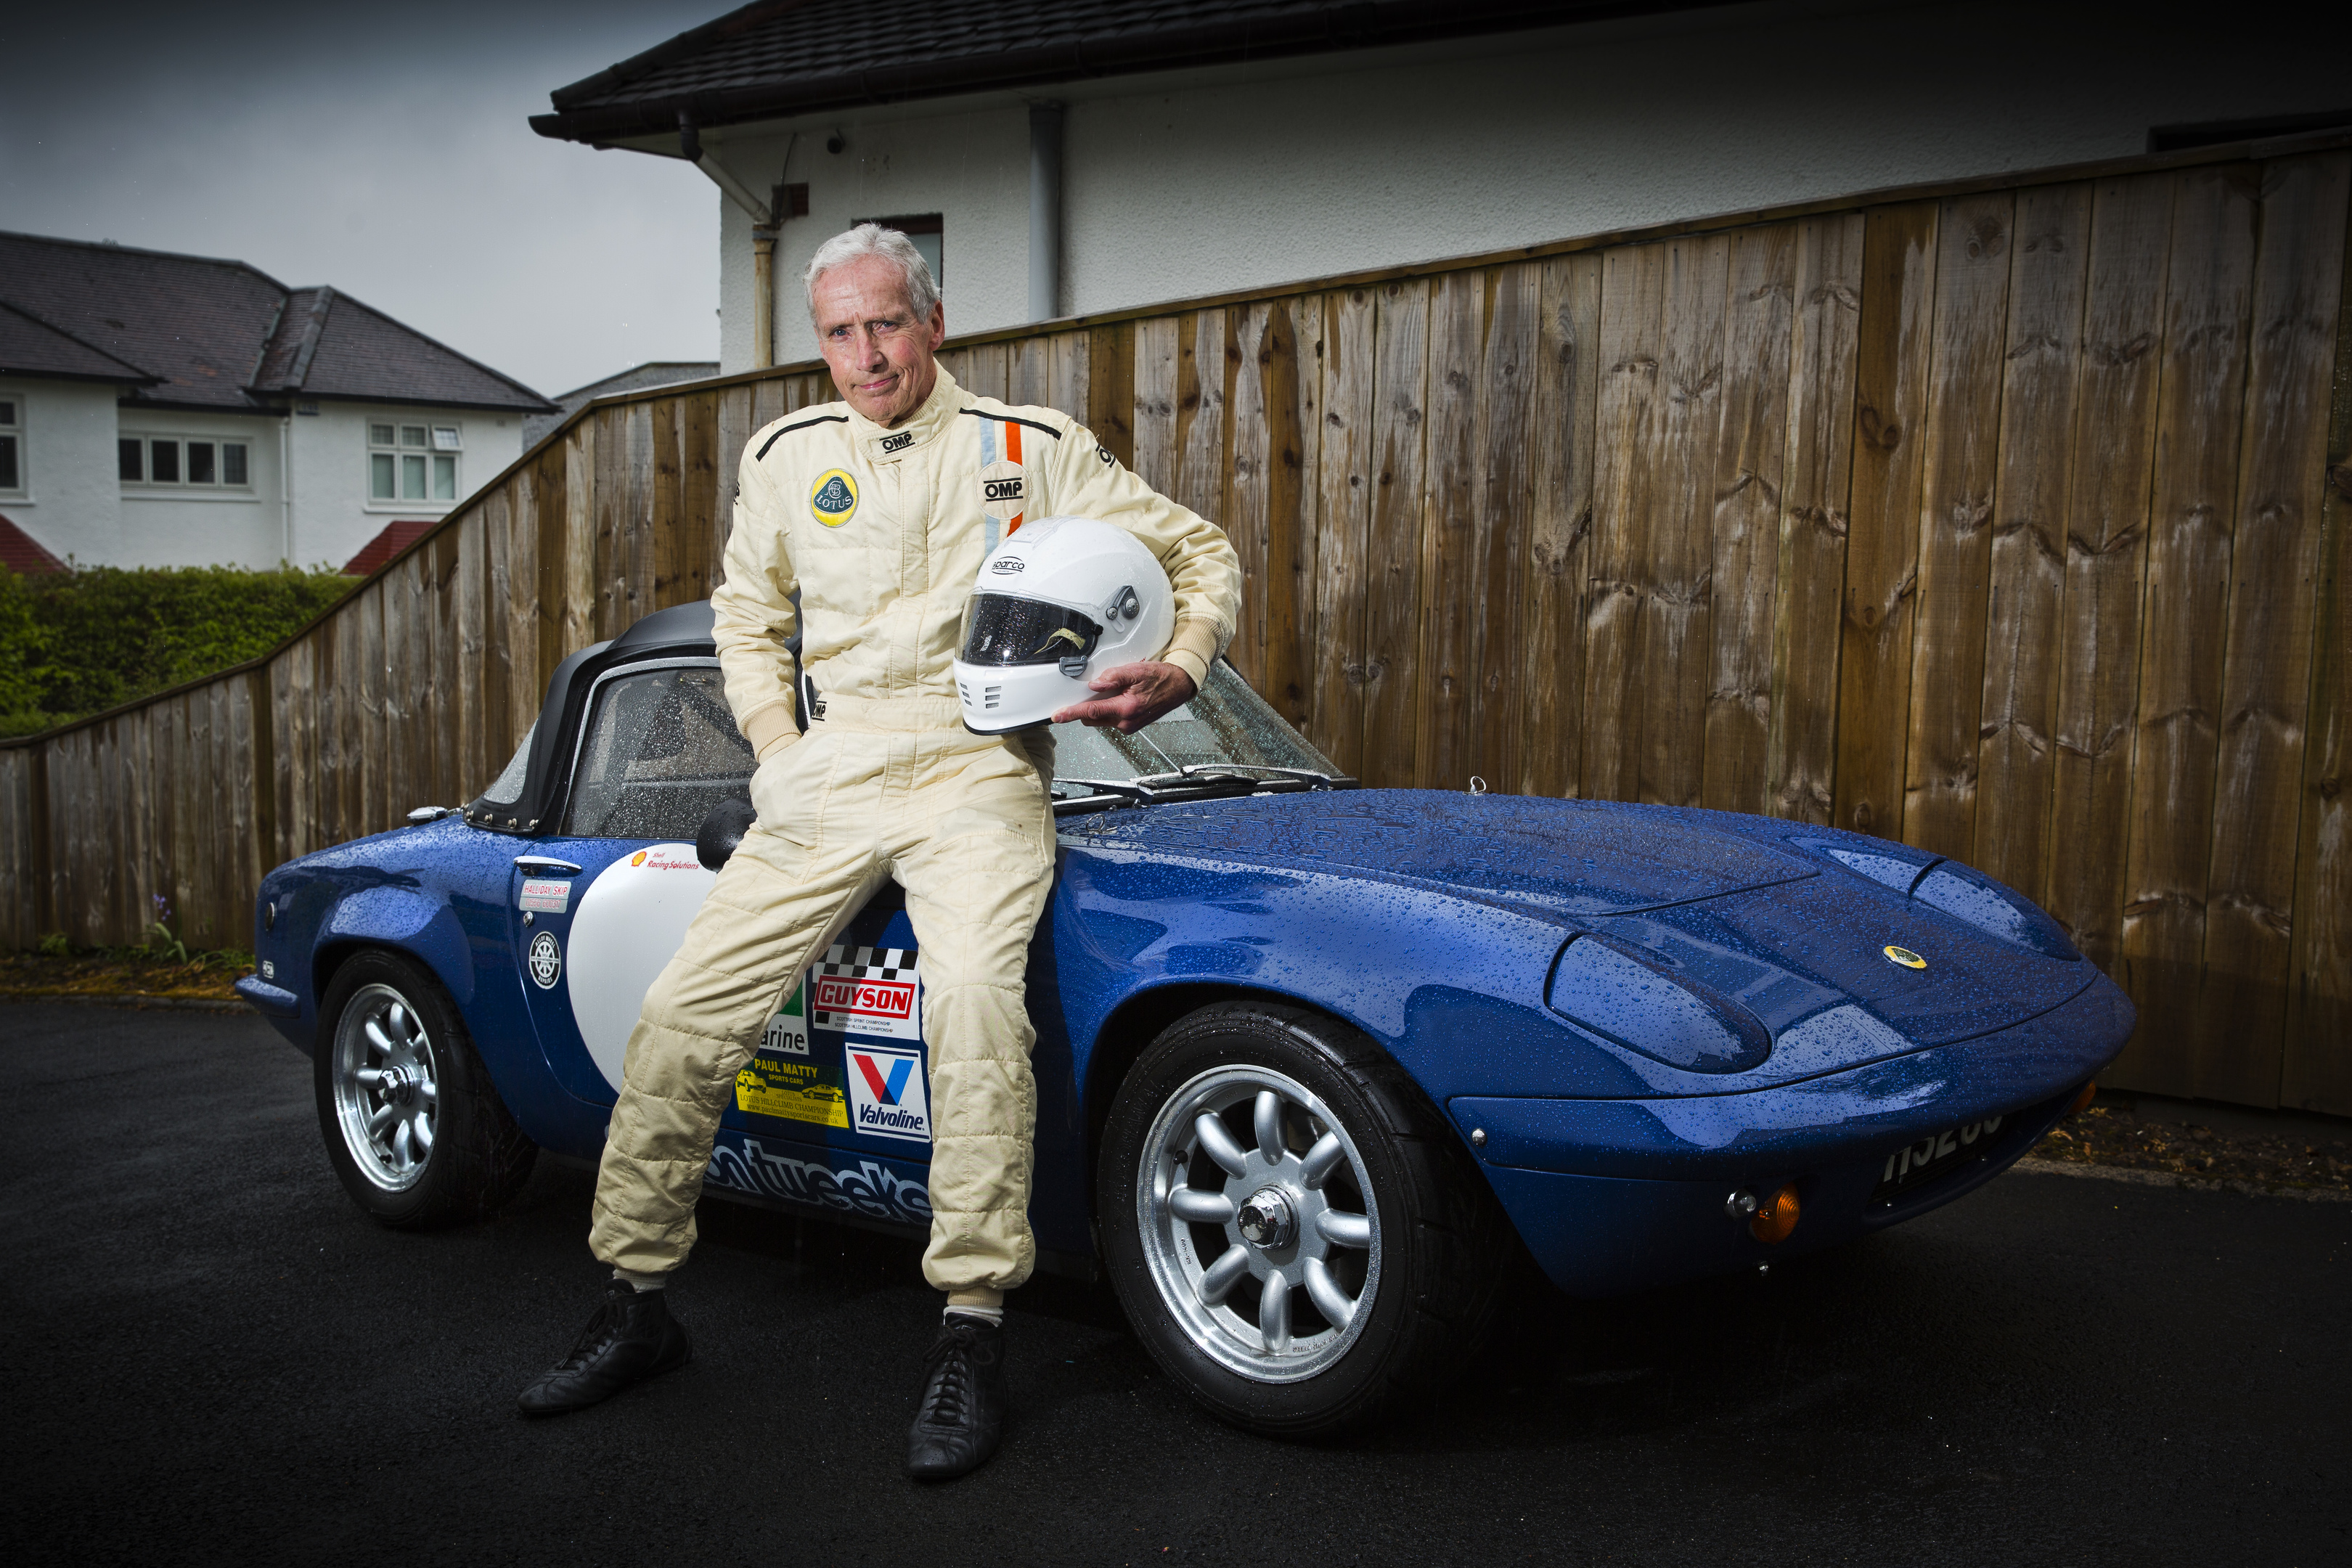 Richard Swindall at 82 still races his 1970 Lotus Elan S4 (Jamie Williamson)